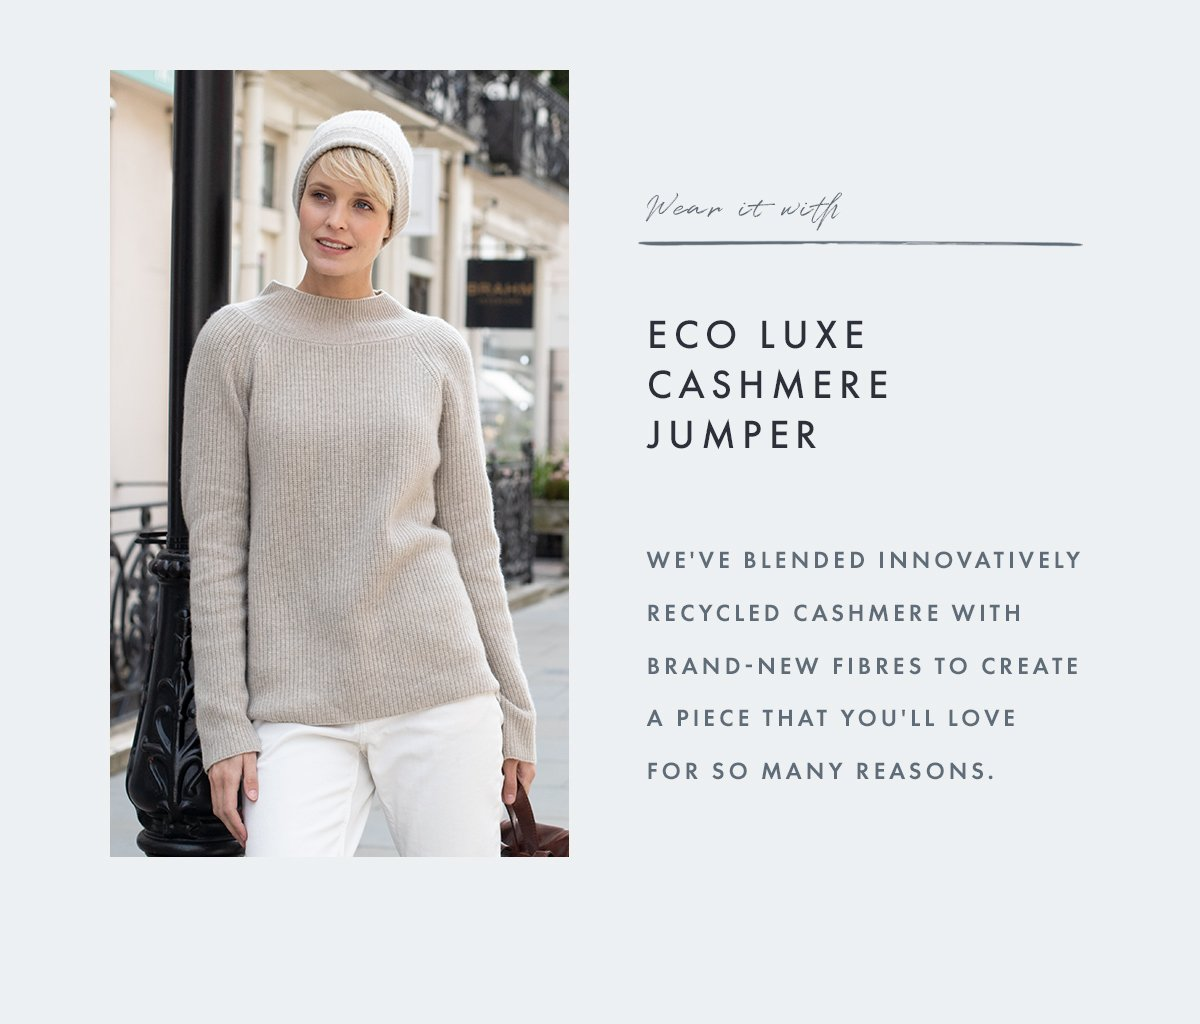 Eco Luxe Cashmere Jumper